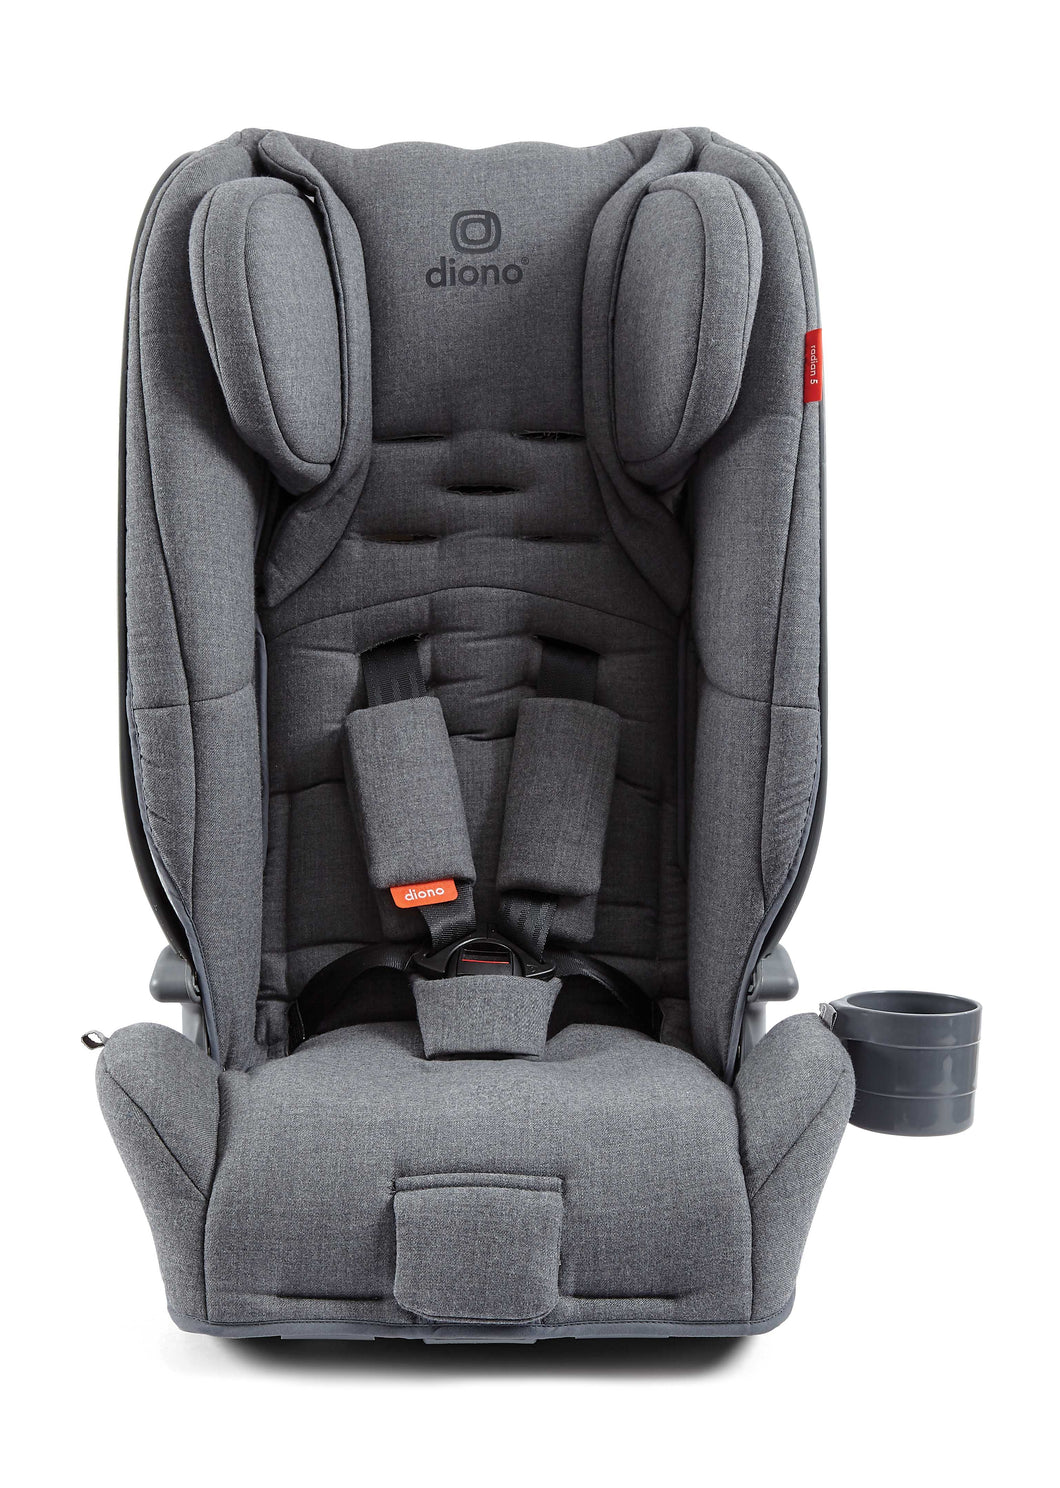 Diono Radian 5 Grey Vogue Child Car Seat Rearfacing.ie